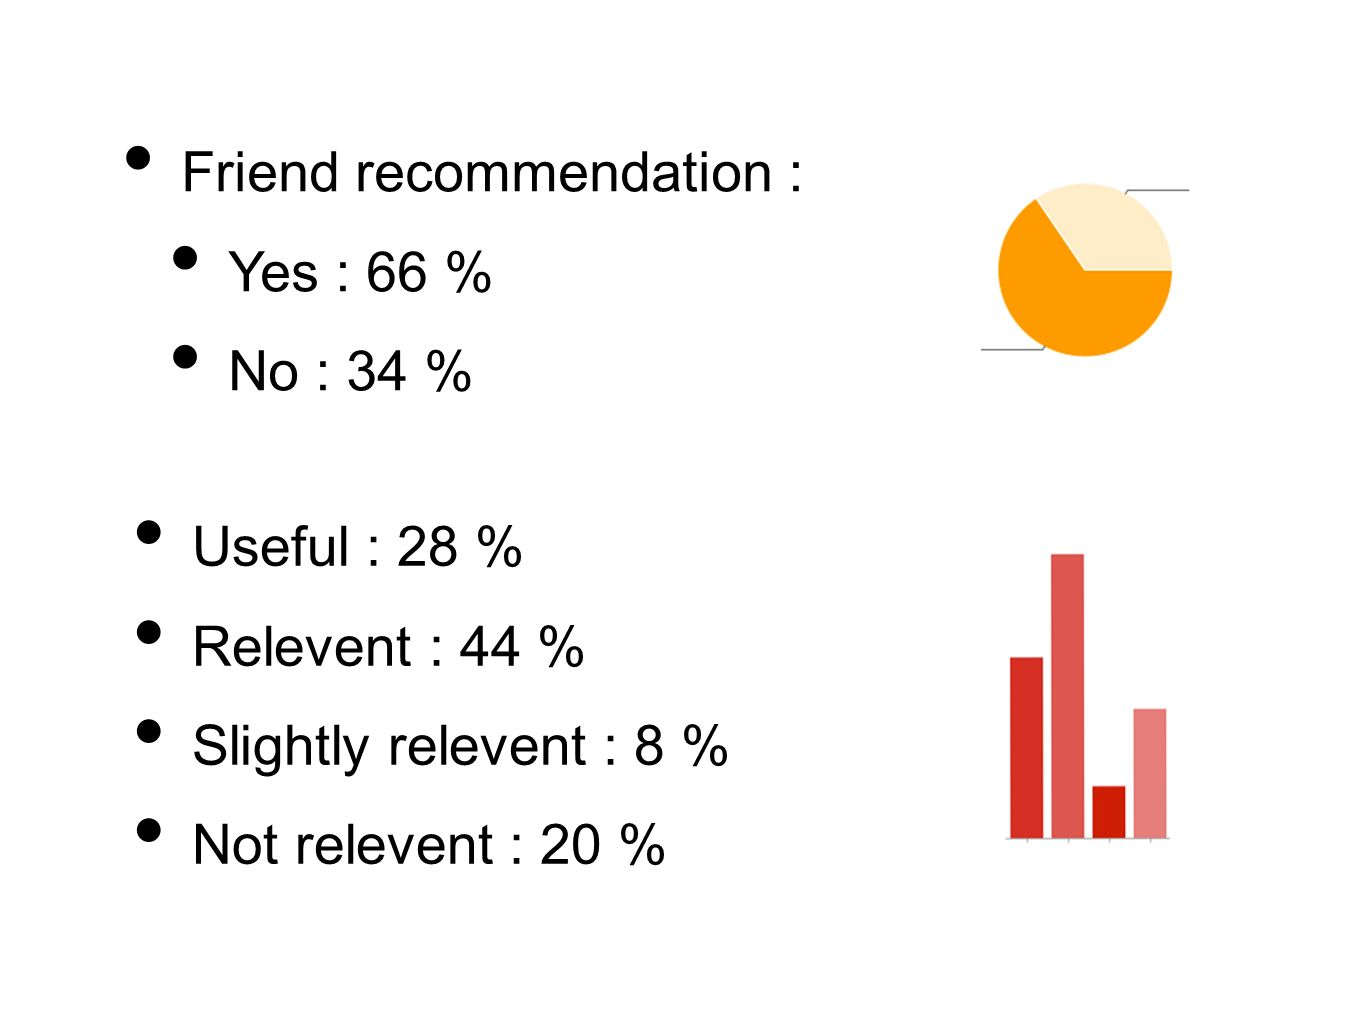 Friend recommendation : Yes : 66 % No : 34 % Useful : 28 % Relevent : 44 % Slightly relevent : 8 % Not relevent : 20 %